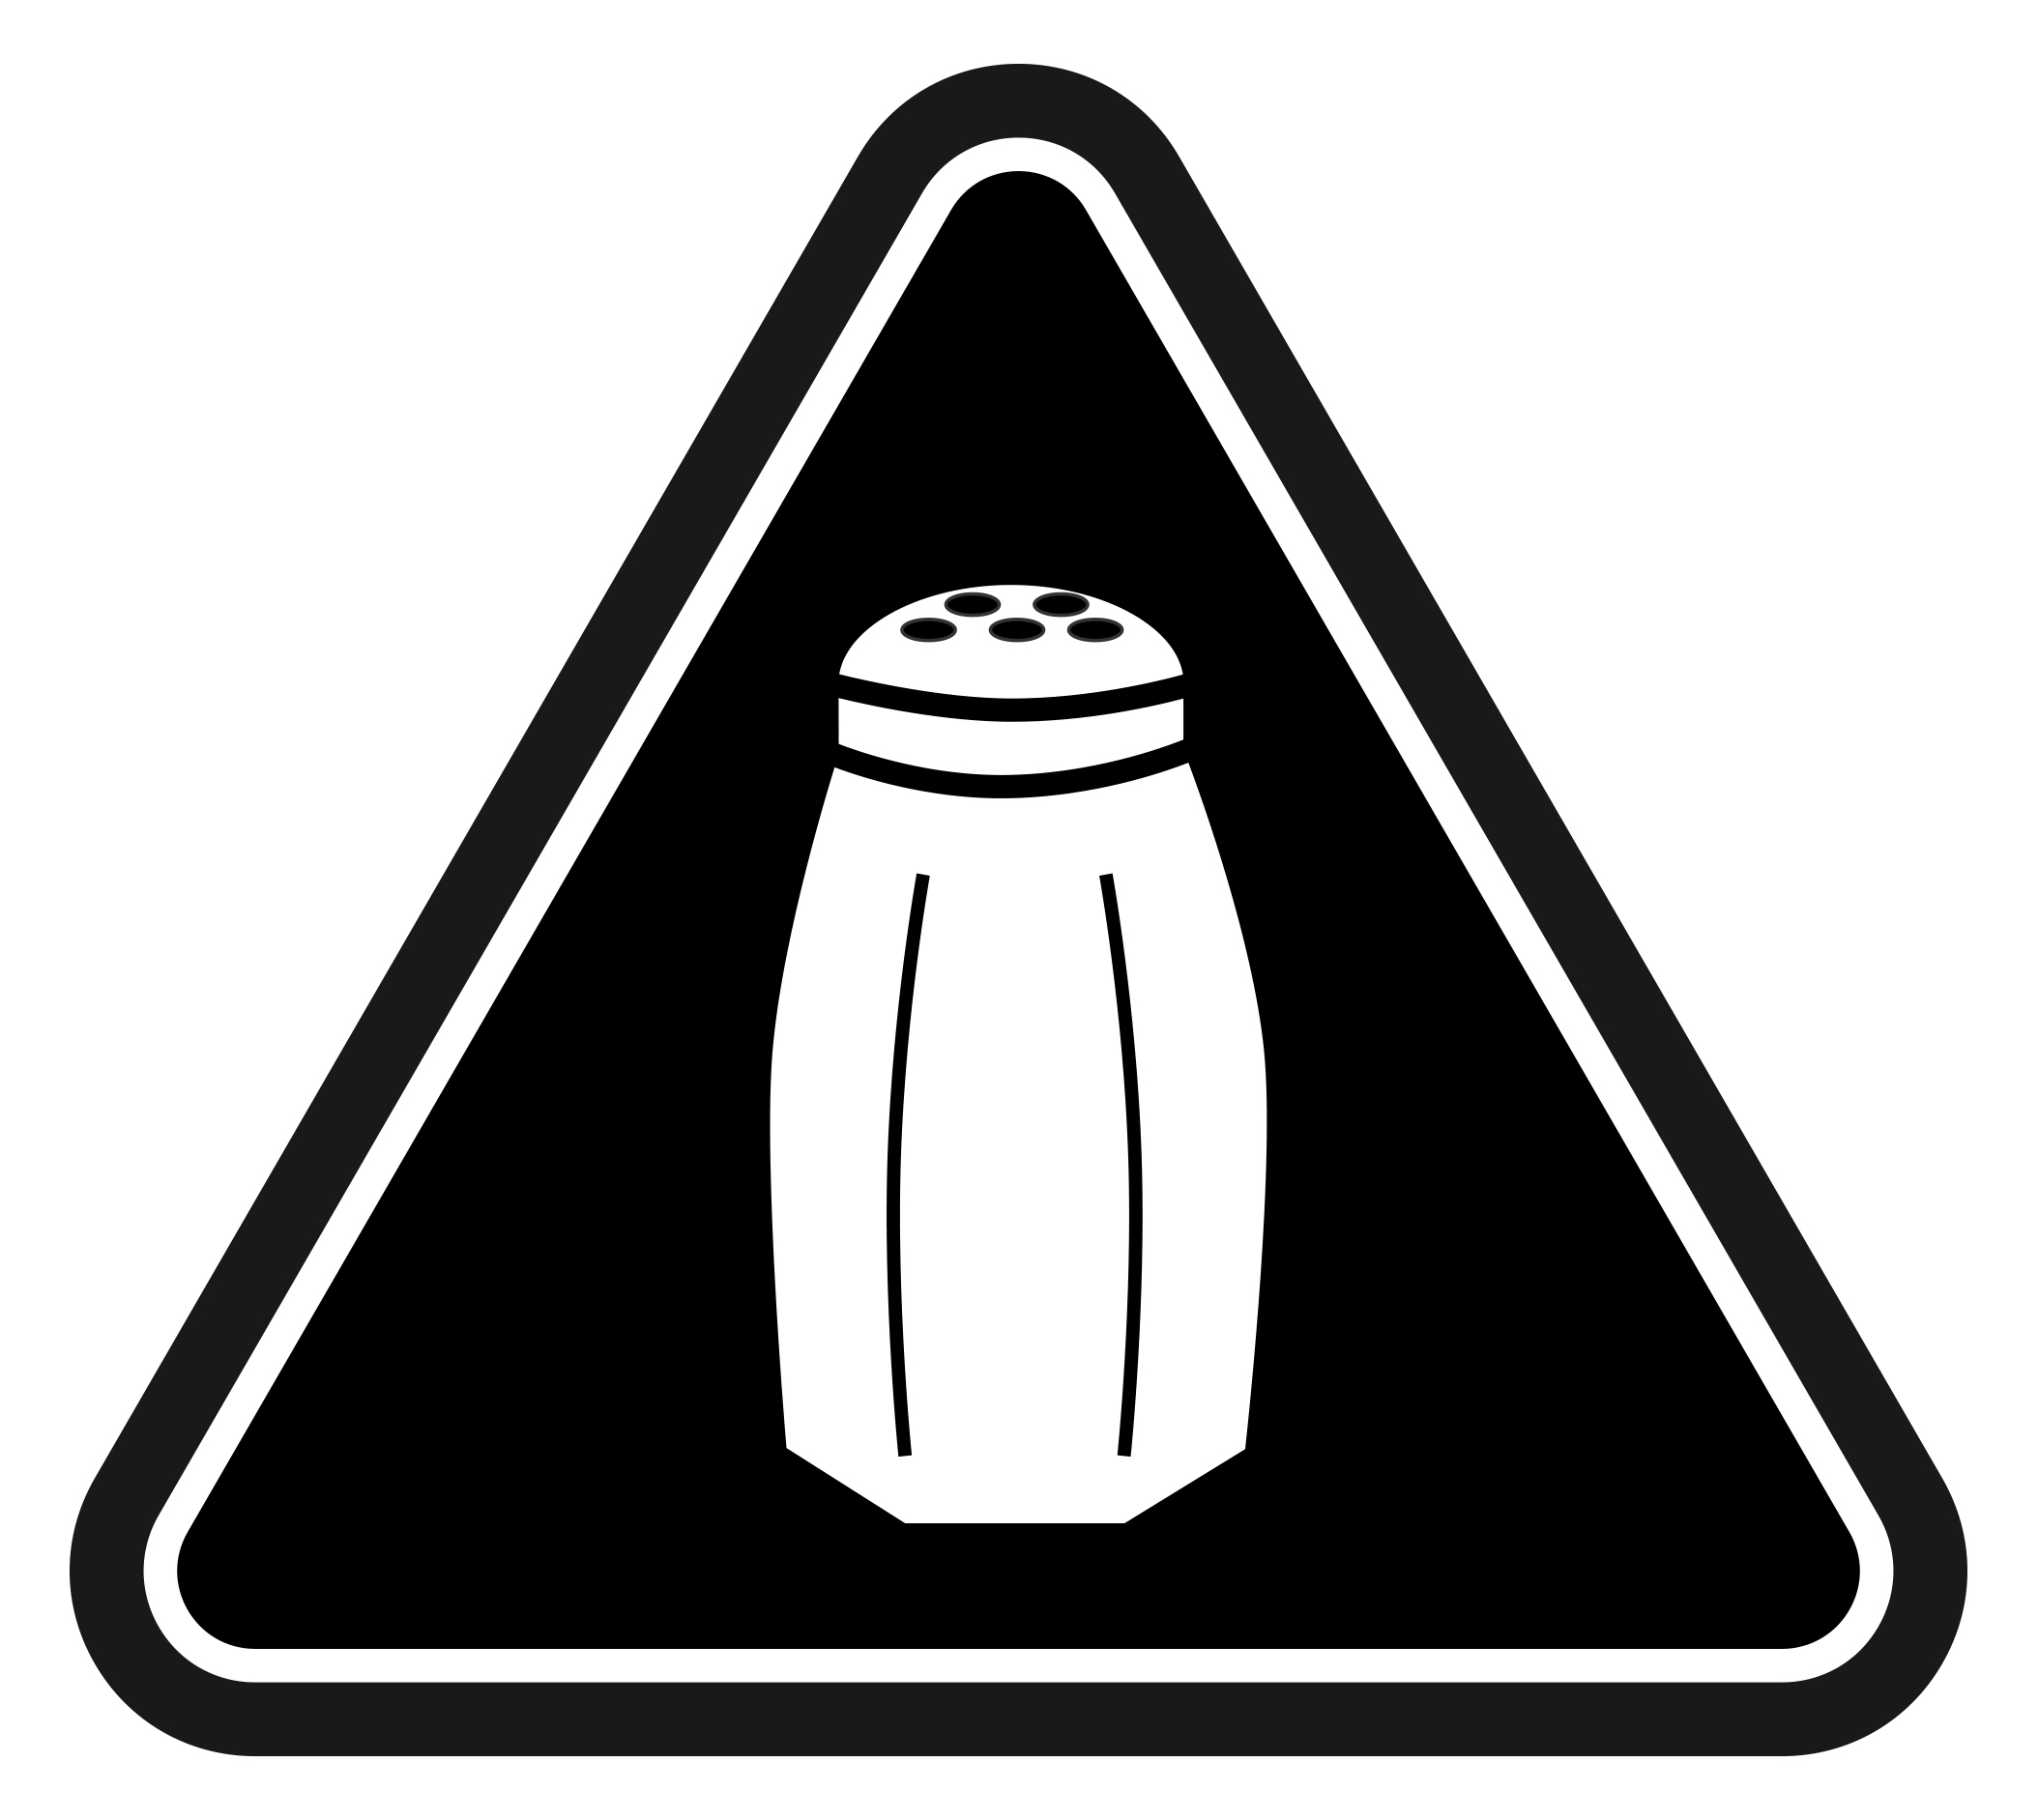 Sodium Warnings Will Stay On The Menu In NYC After Court Ruling